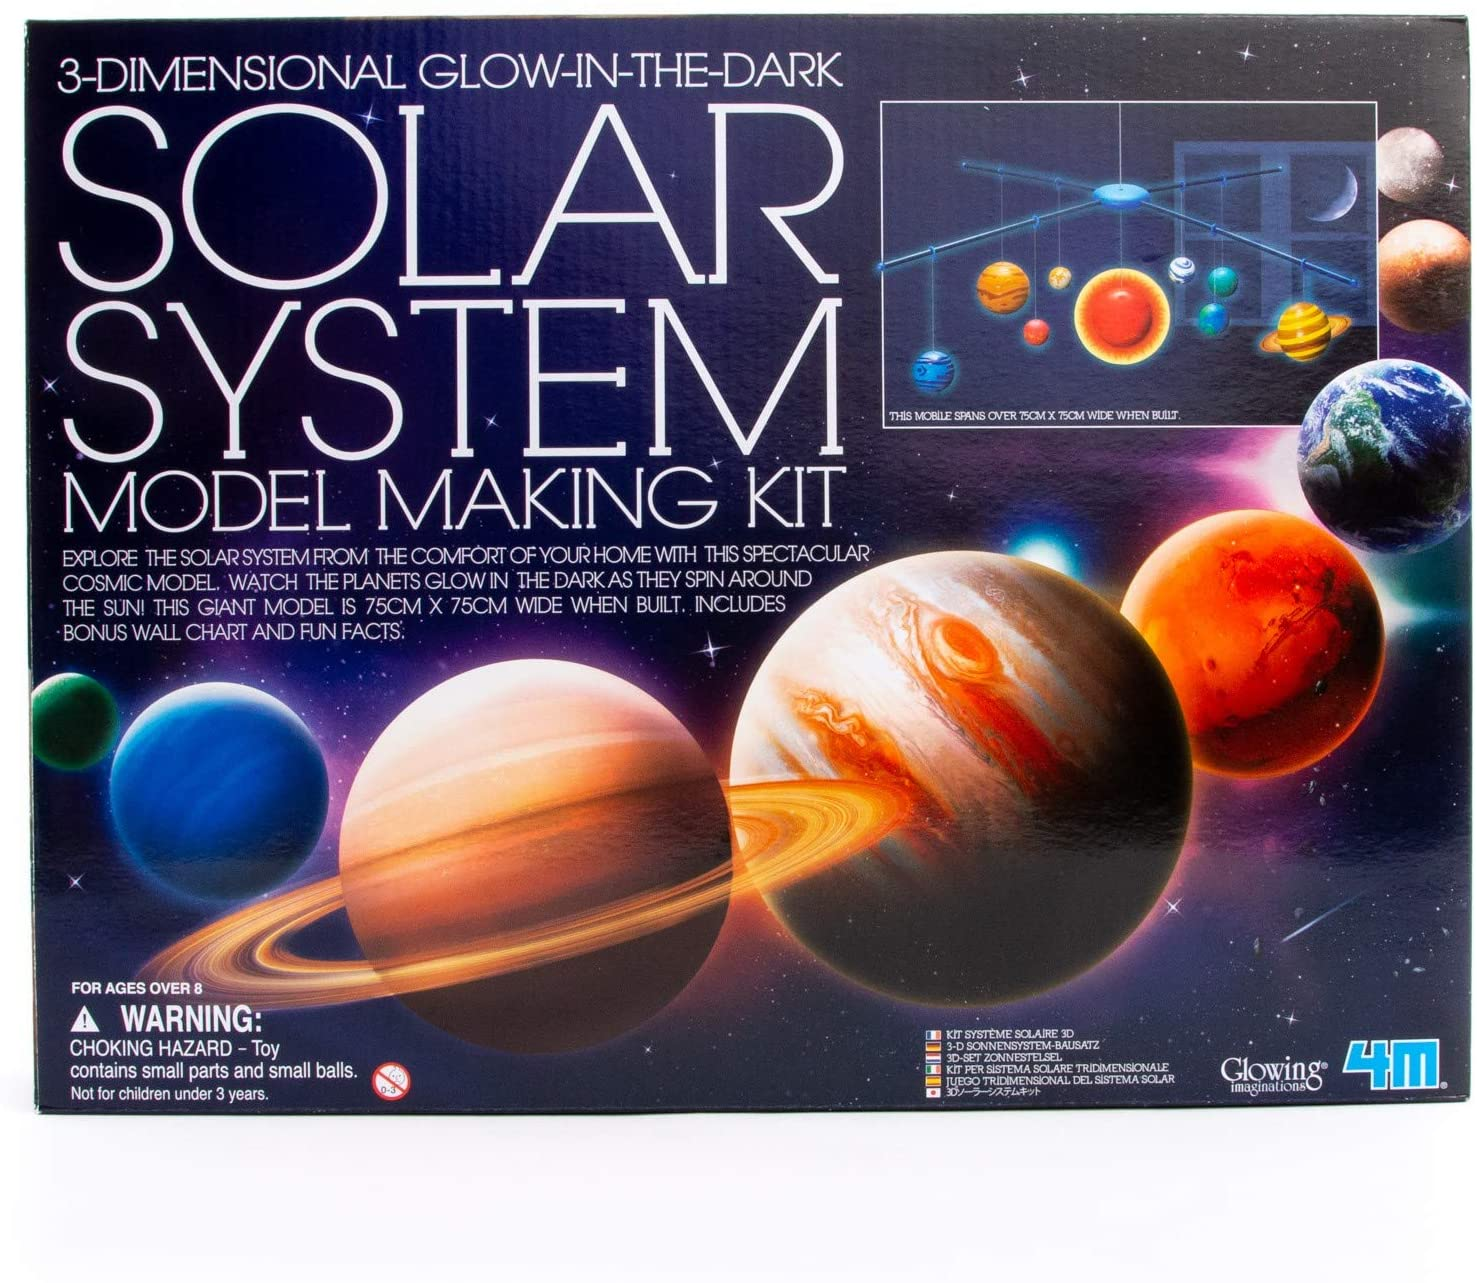 4M 3D Glow-in-the-Dark Solar System Mobile Kit - Super beauty Choice product restock quality top DIY Scie Making